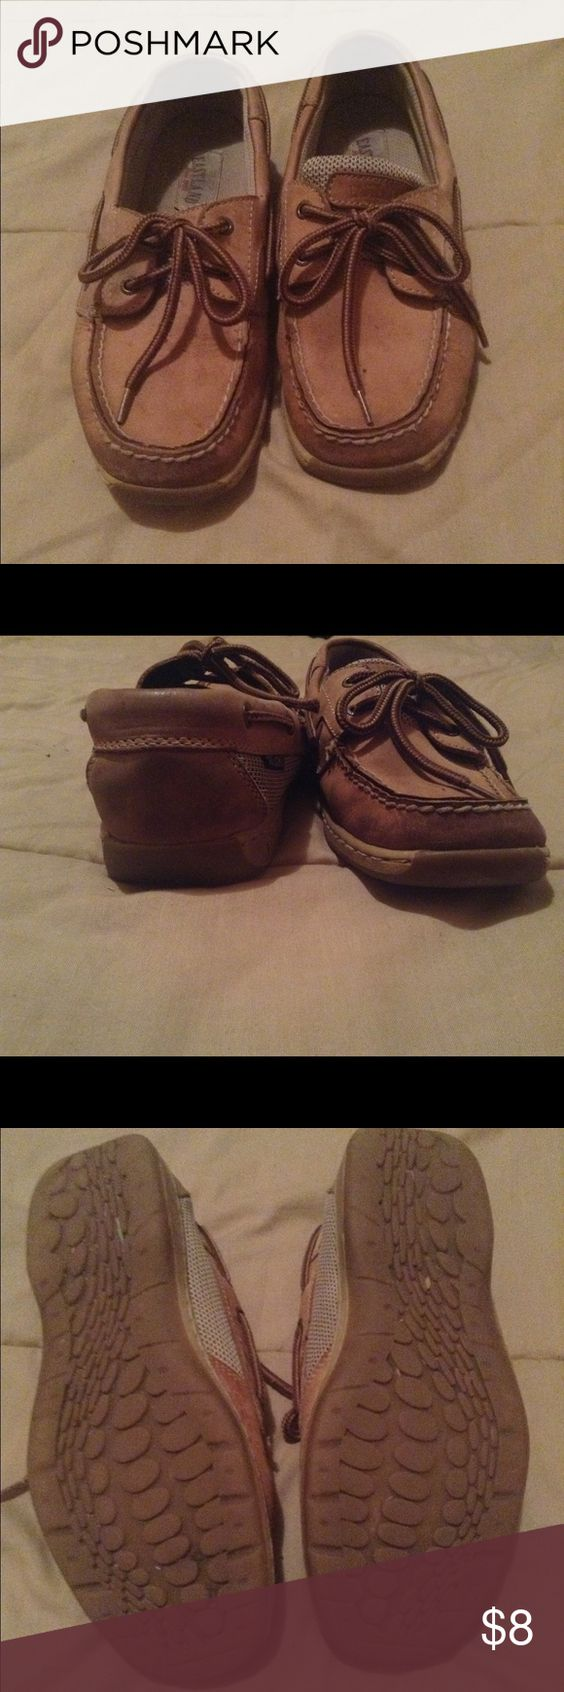 Cheap sperry lookalike These are still in pretty good condition I just don't wear any more! •smoke free pet friendly home• •offers!• Eastland Shoes Flats & Loafers